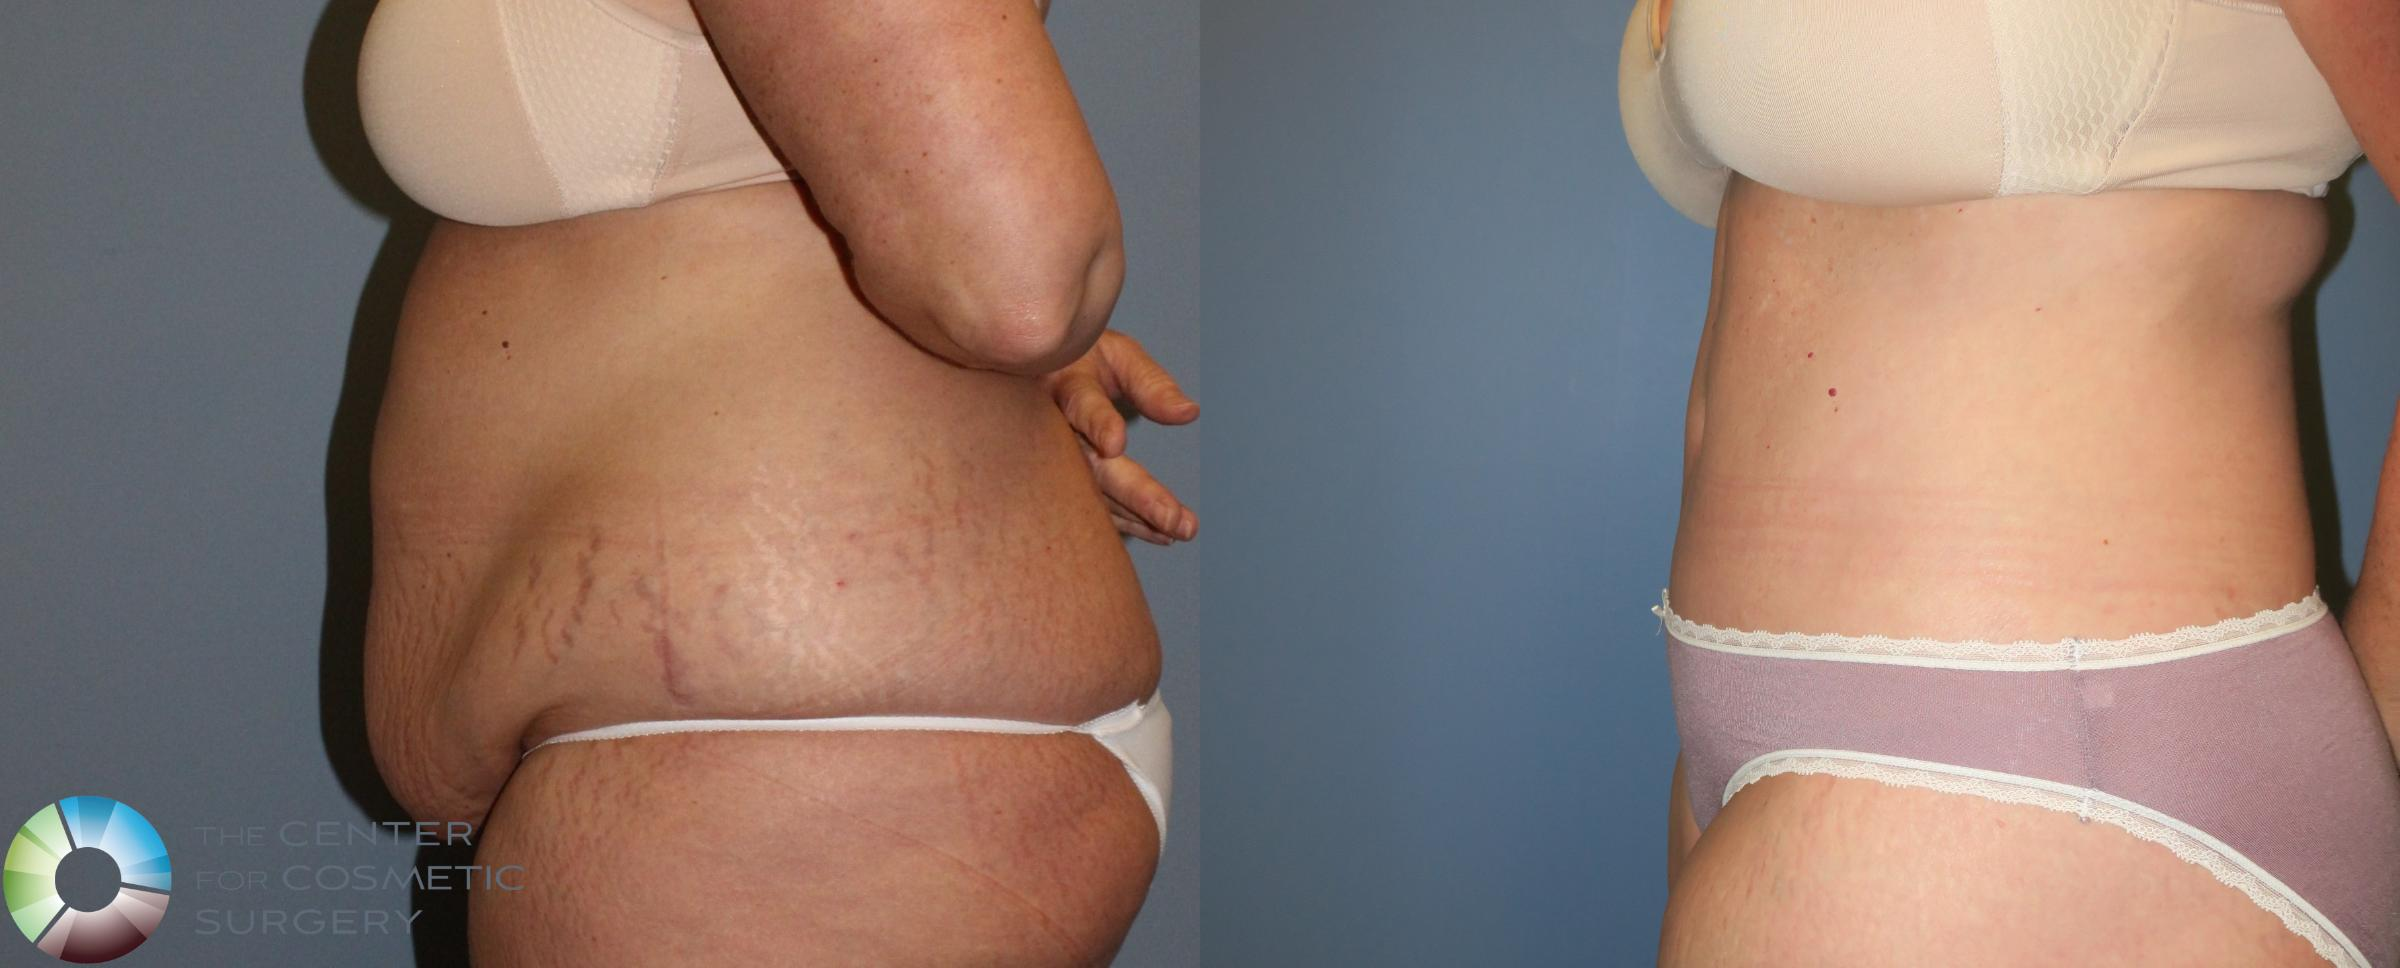 Body Lift Case 765 Before & After View #3 | Golden, CO | The Center for Cosmetic Surgery